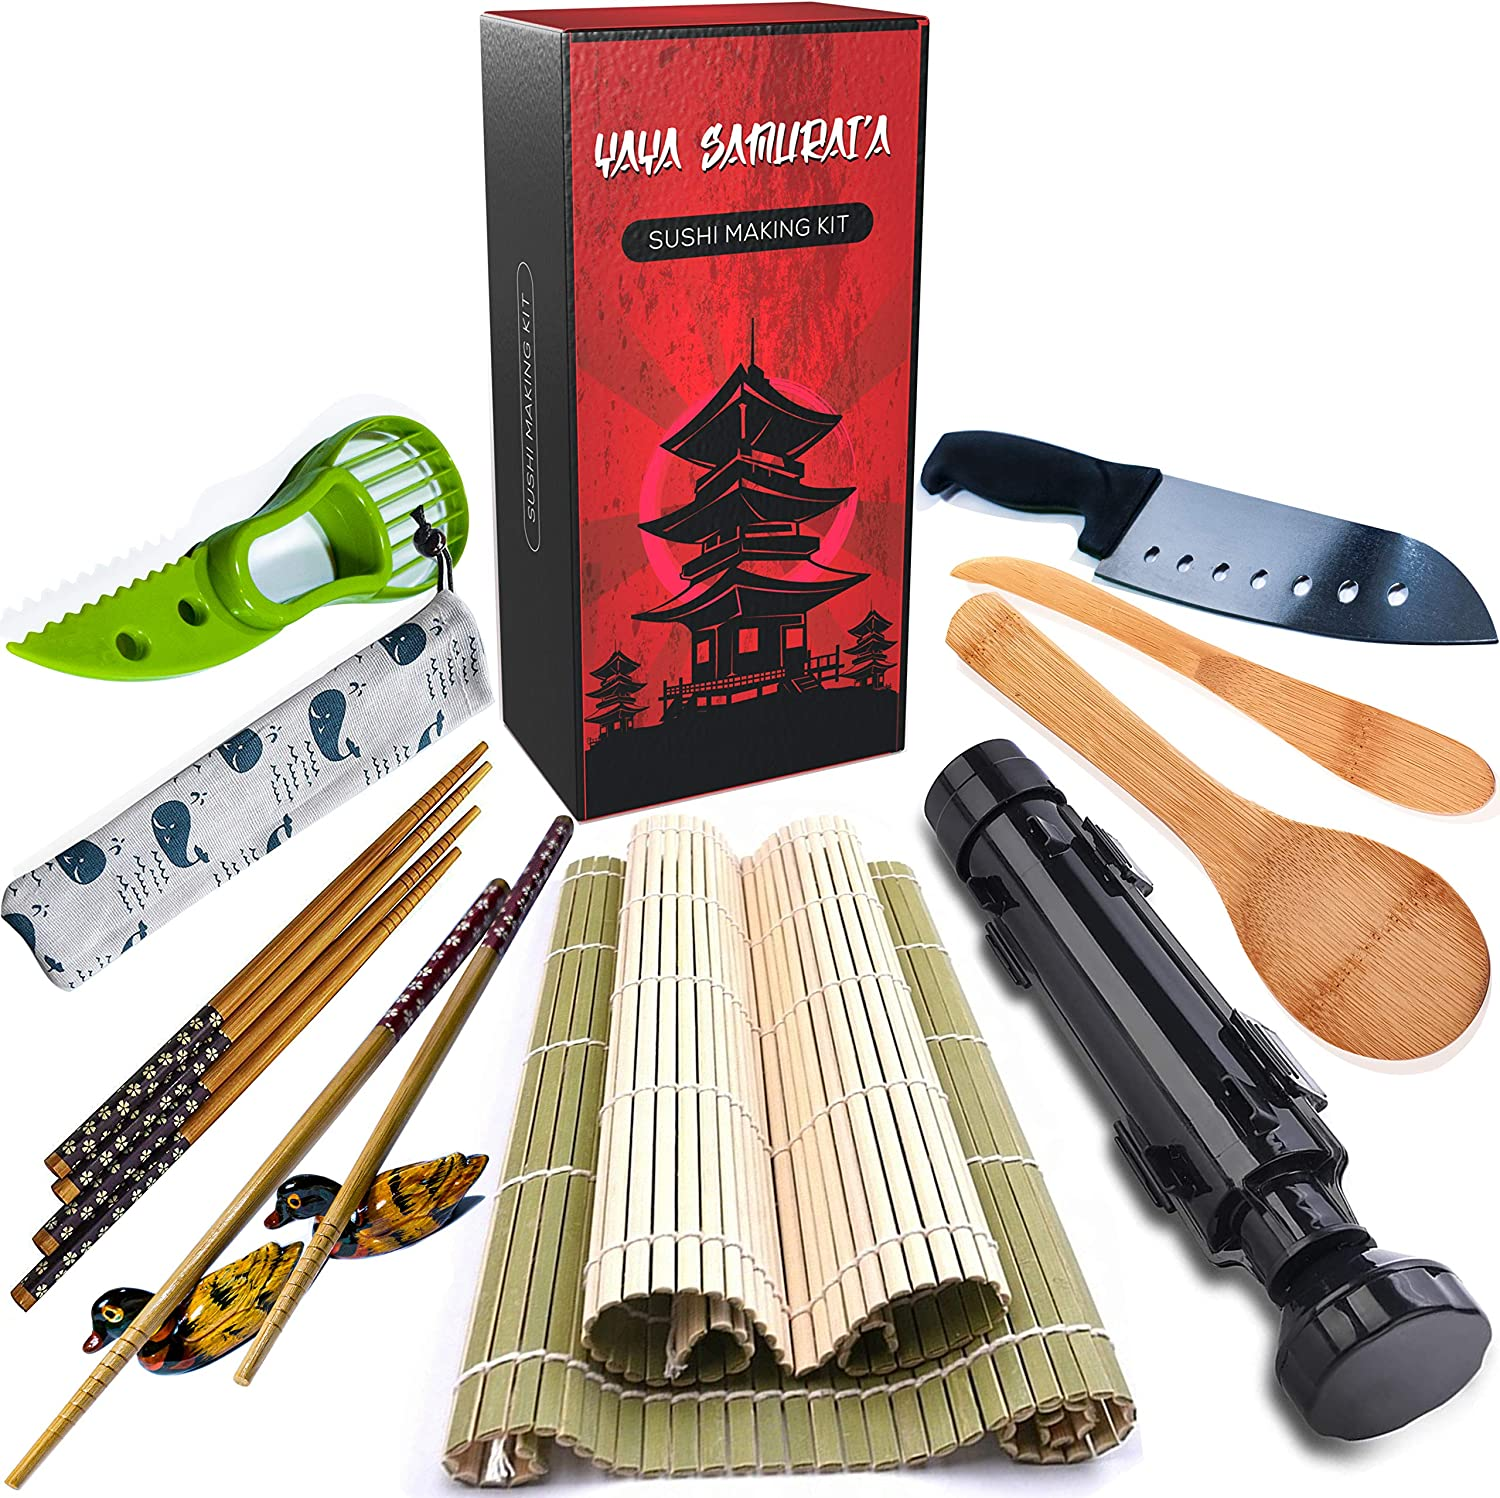 Sushi Making Kit by Yaya Samurai'a - Professional Sushi Utensils and Gadget Tools Set for Instant, Homemade Japanese Food - Easy to Use, Great for Cooking Beginners, Chefs, Gifts, Kids and Party